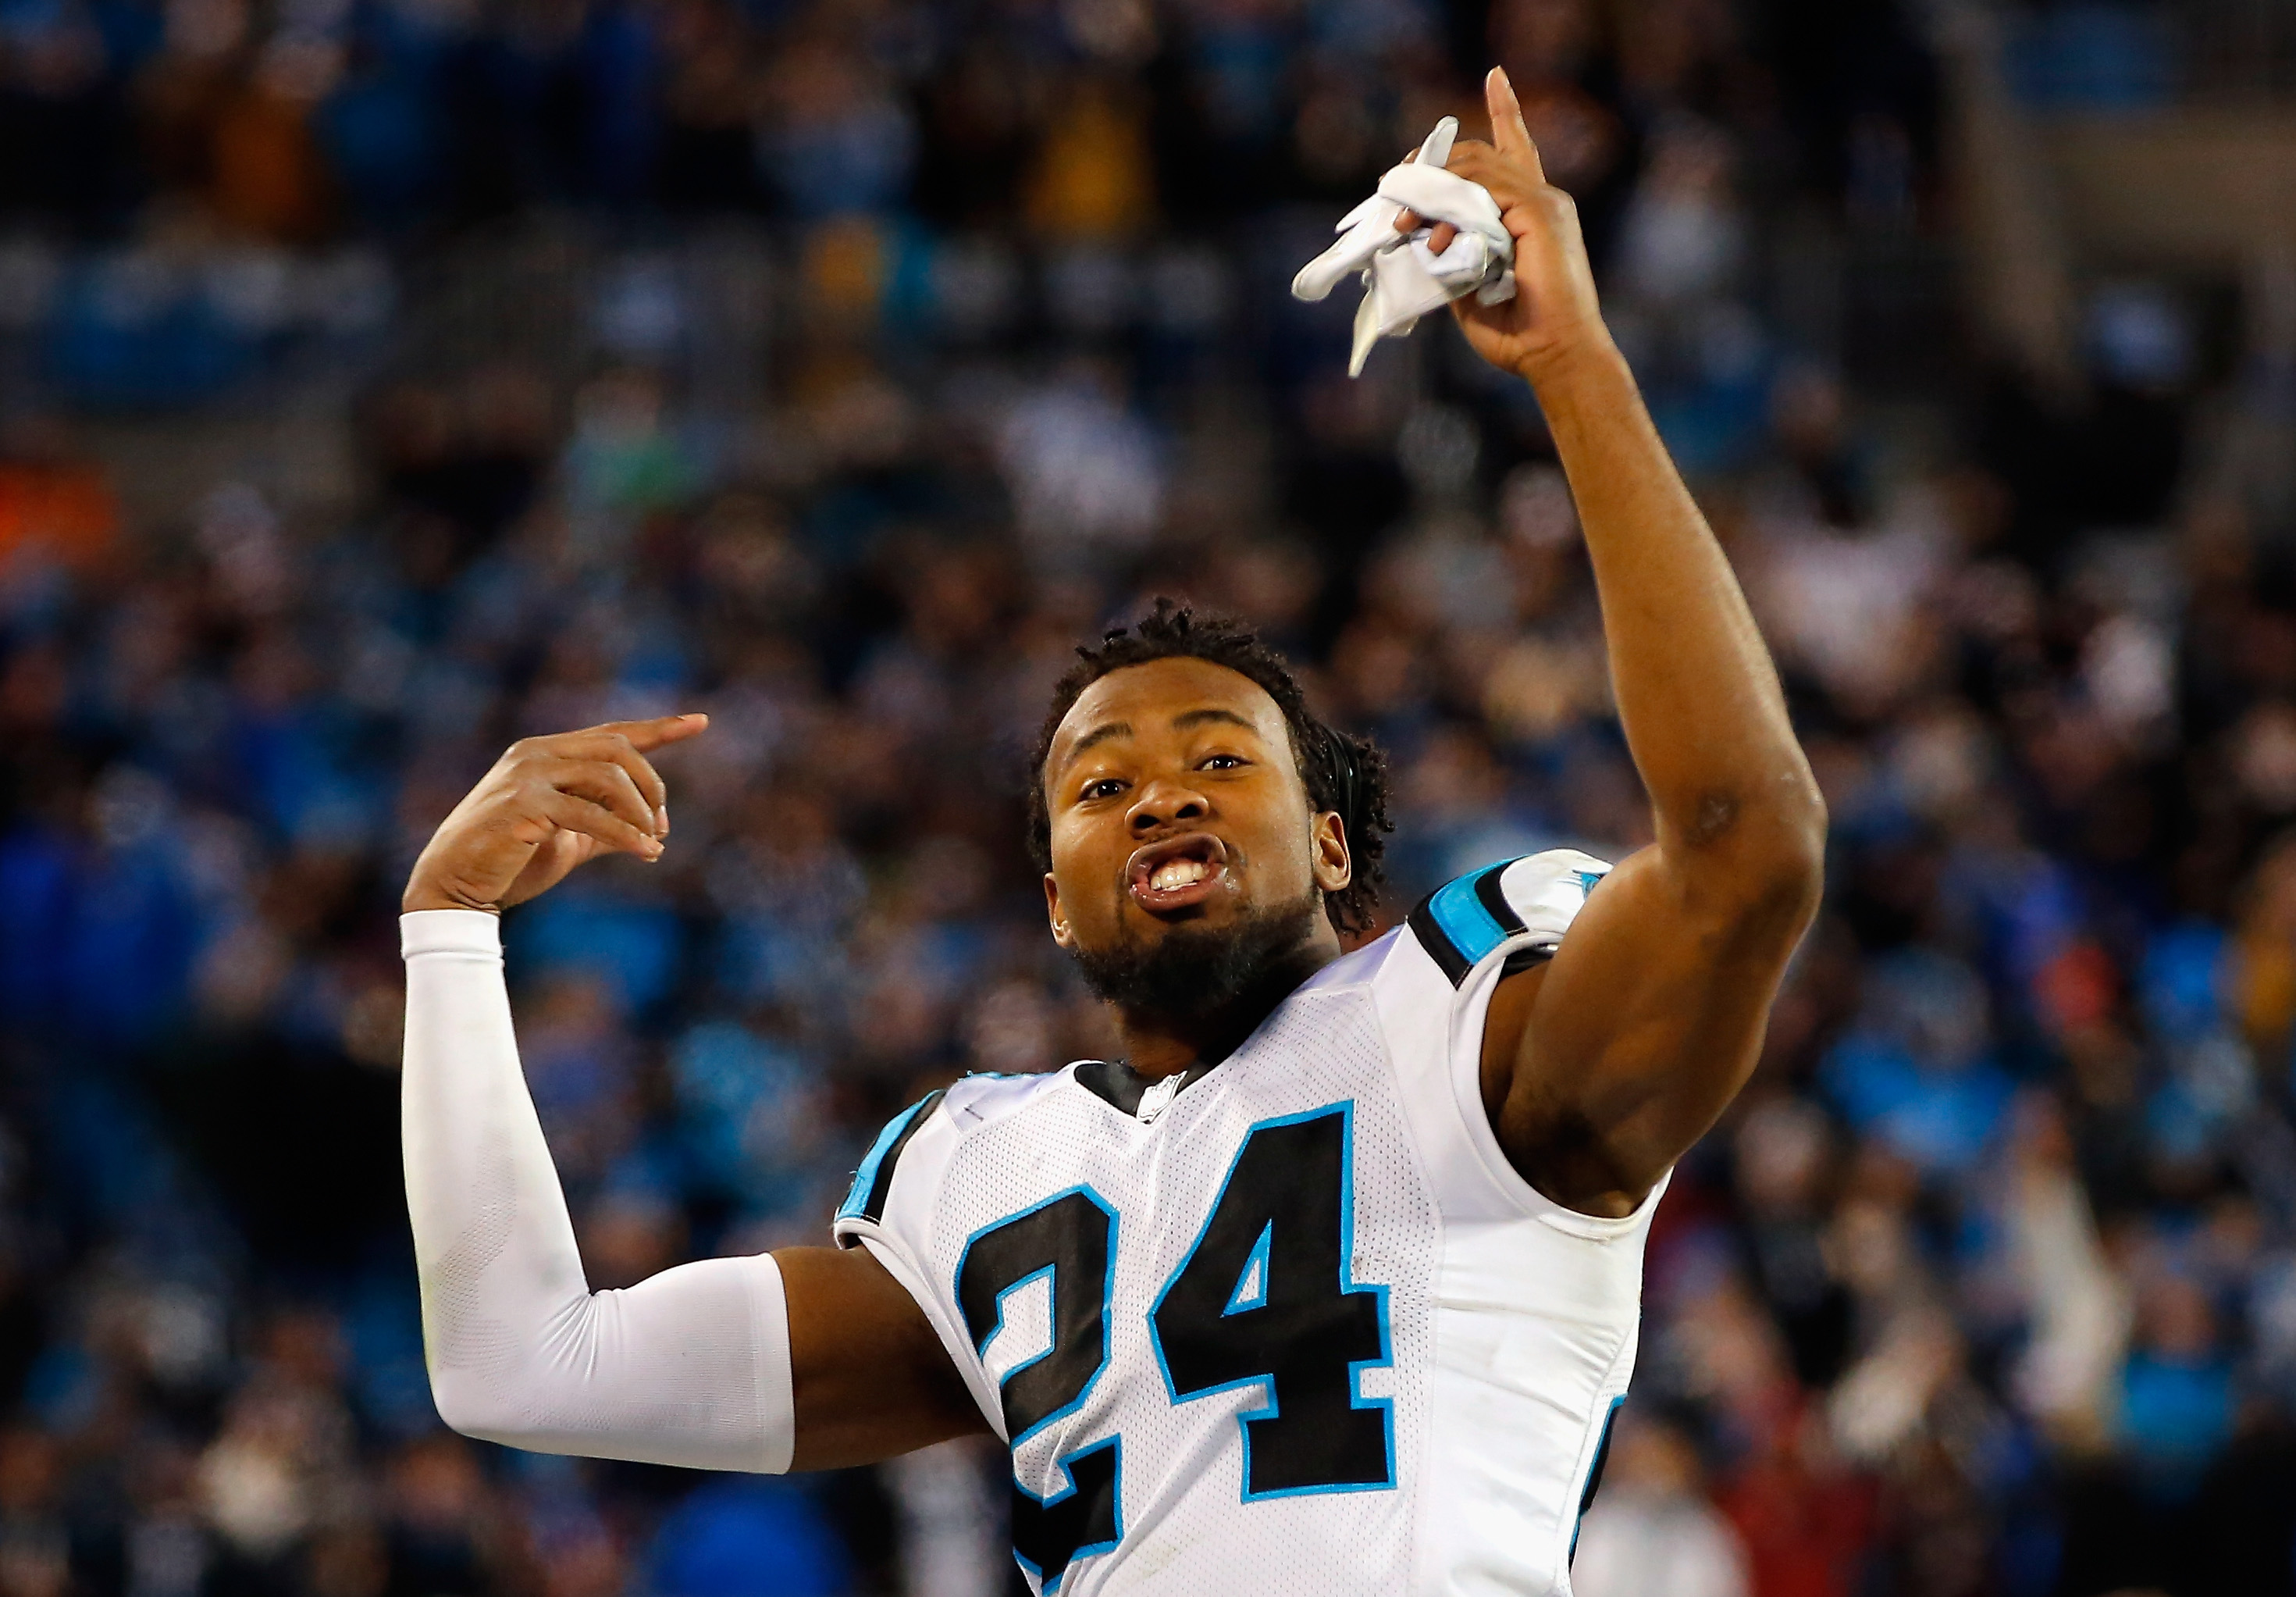 Josh Norman Contract Star NFL Cornerback A Challenge For Carolina